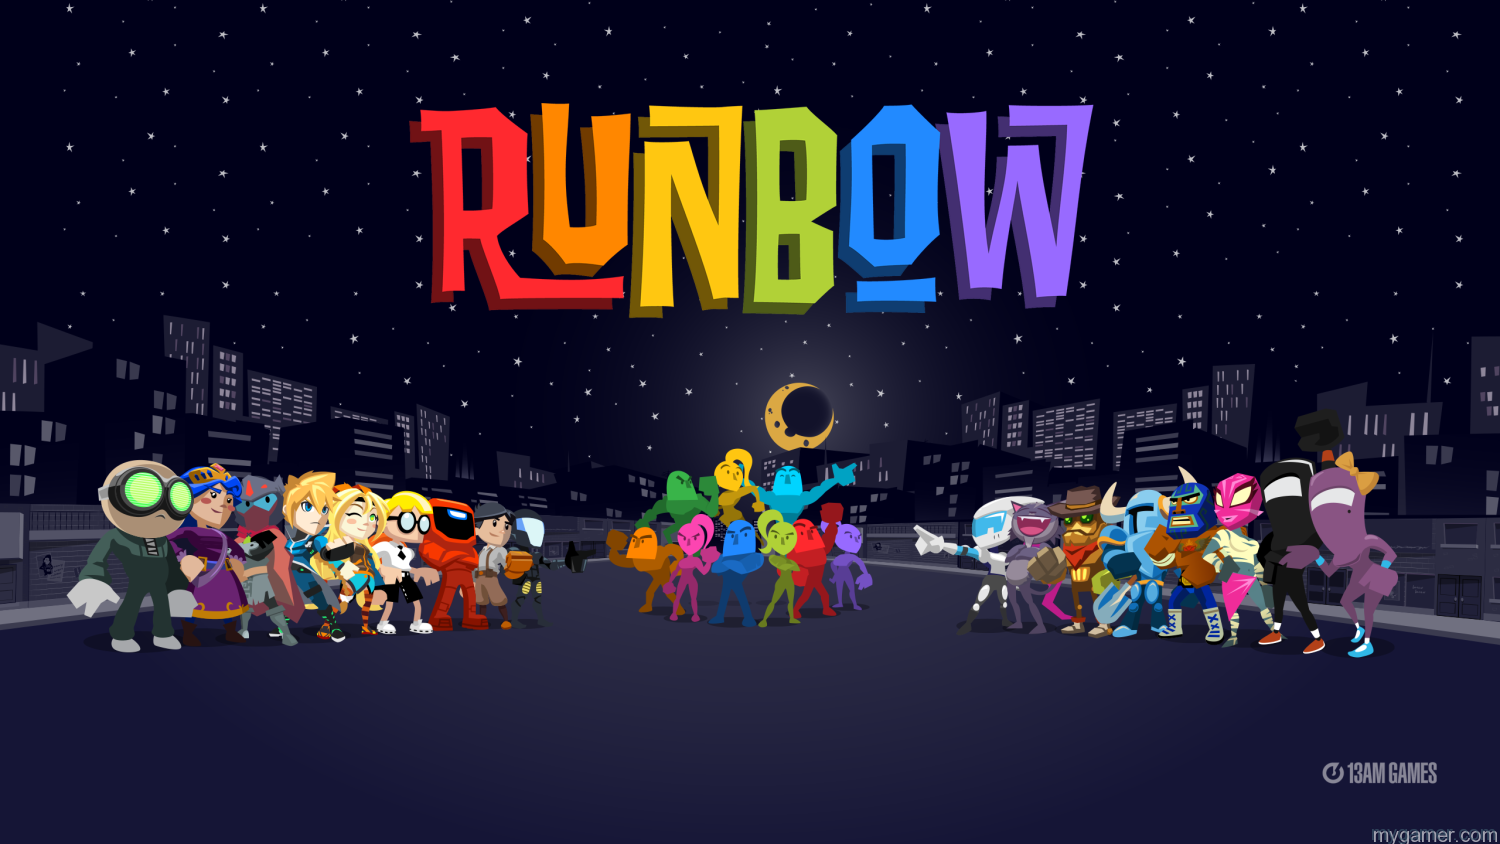 runbow-group-2k-wallpaper-1500x844 Exclusive Interview with 13AM Games About Runbow Deluxe Edition Exclusive Interview with 13AM Games About Runbow Deluxe Edition Runbow Group 2K wallpaper 1500x844